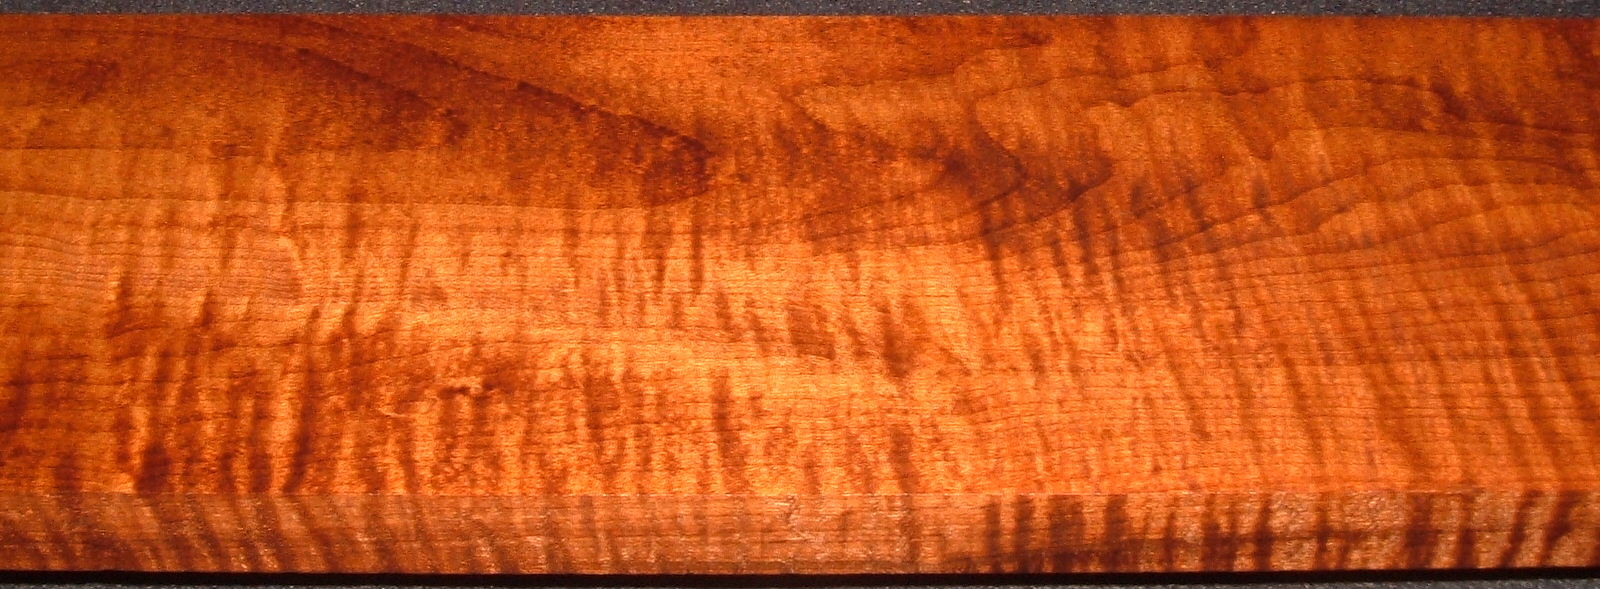 RHM2010-333,1-1/16x5-1/2x39, Roasted Torrefied Curly, Tiger Maple, Roasted Hard Maple